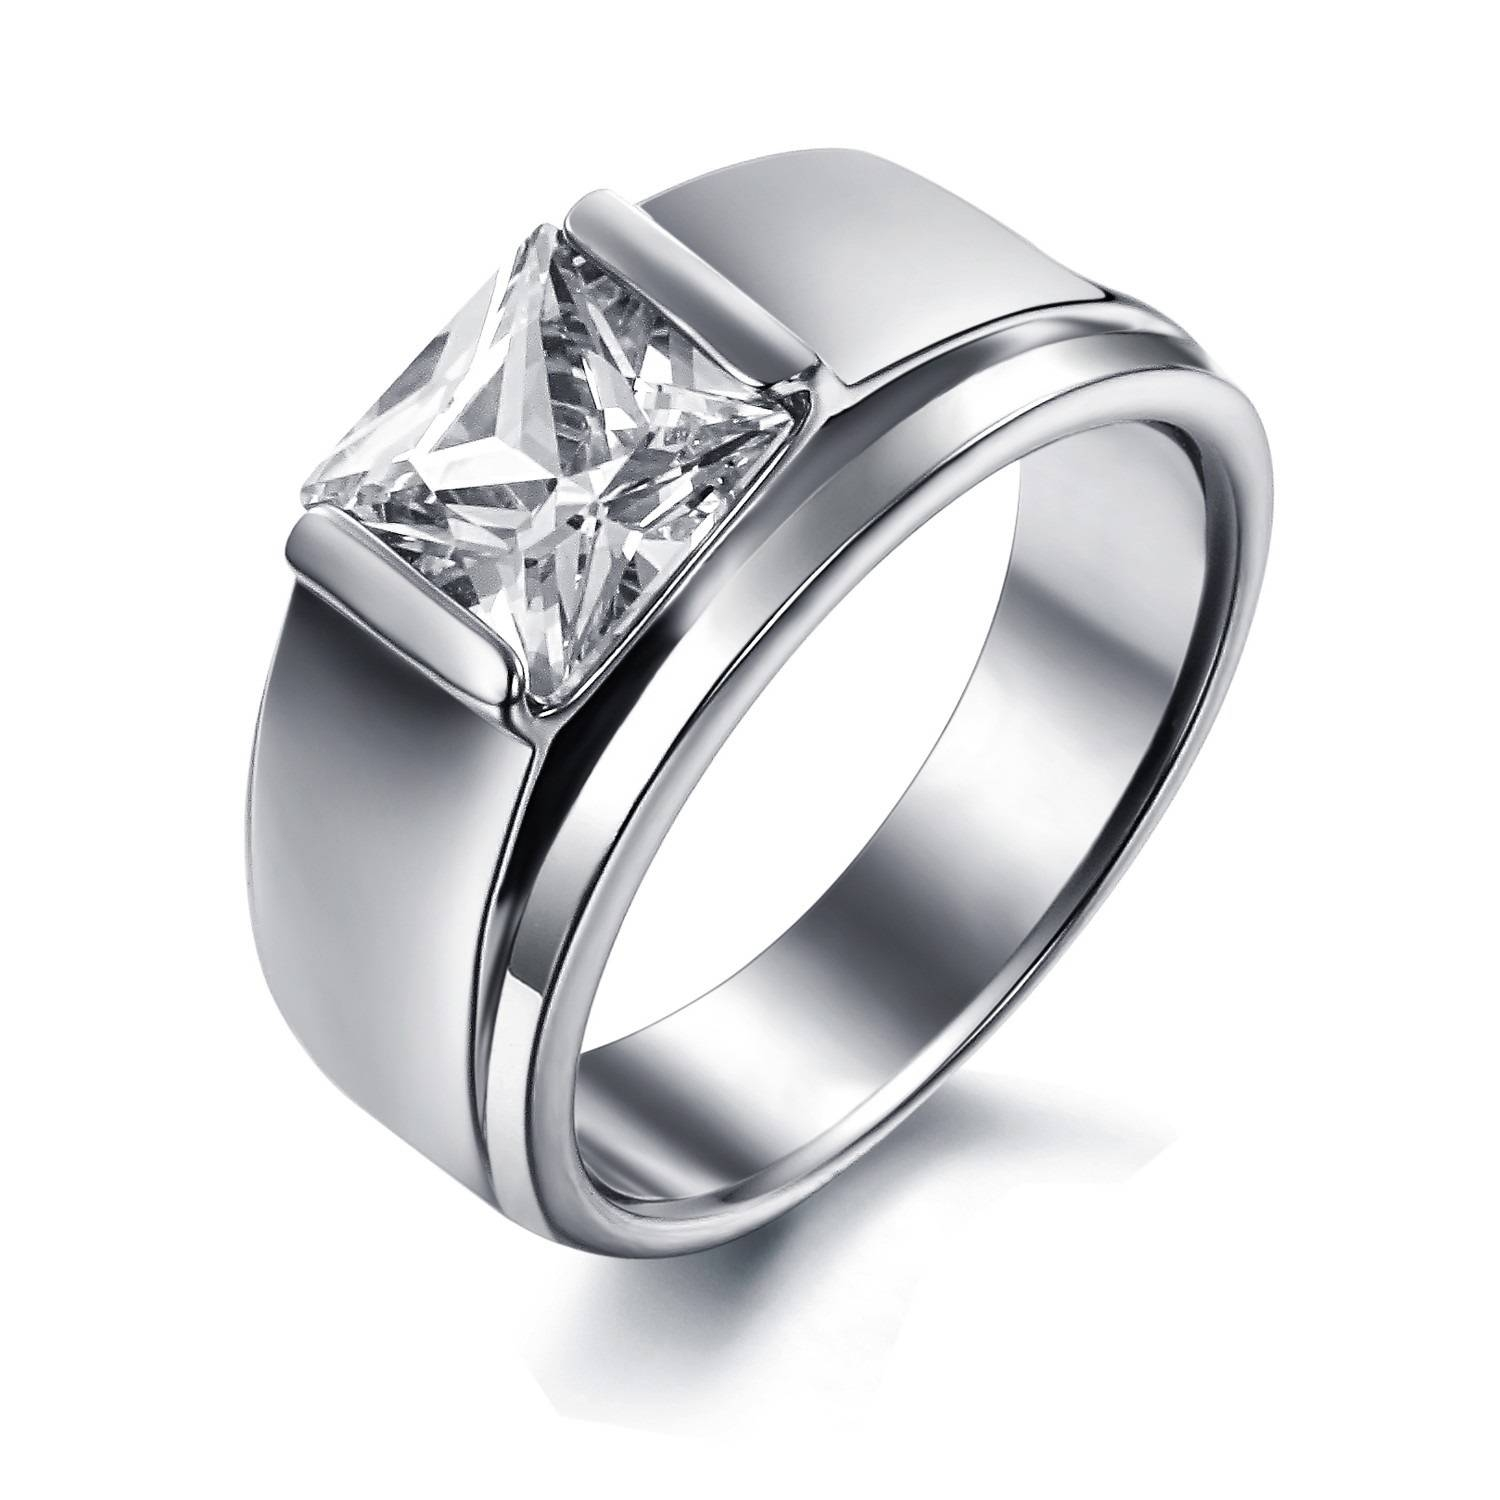 Women's Stainless Steel Engagement Promise Wedding Band Ring With Regard To Womans Wedding Rings (View 13 of 15)